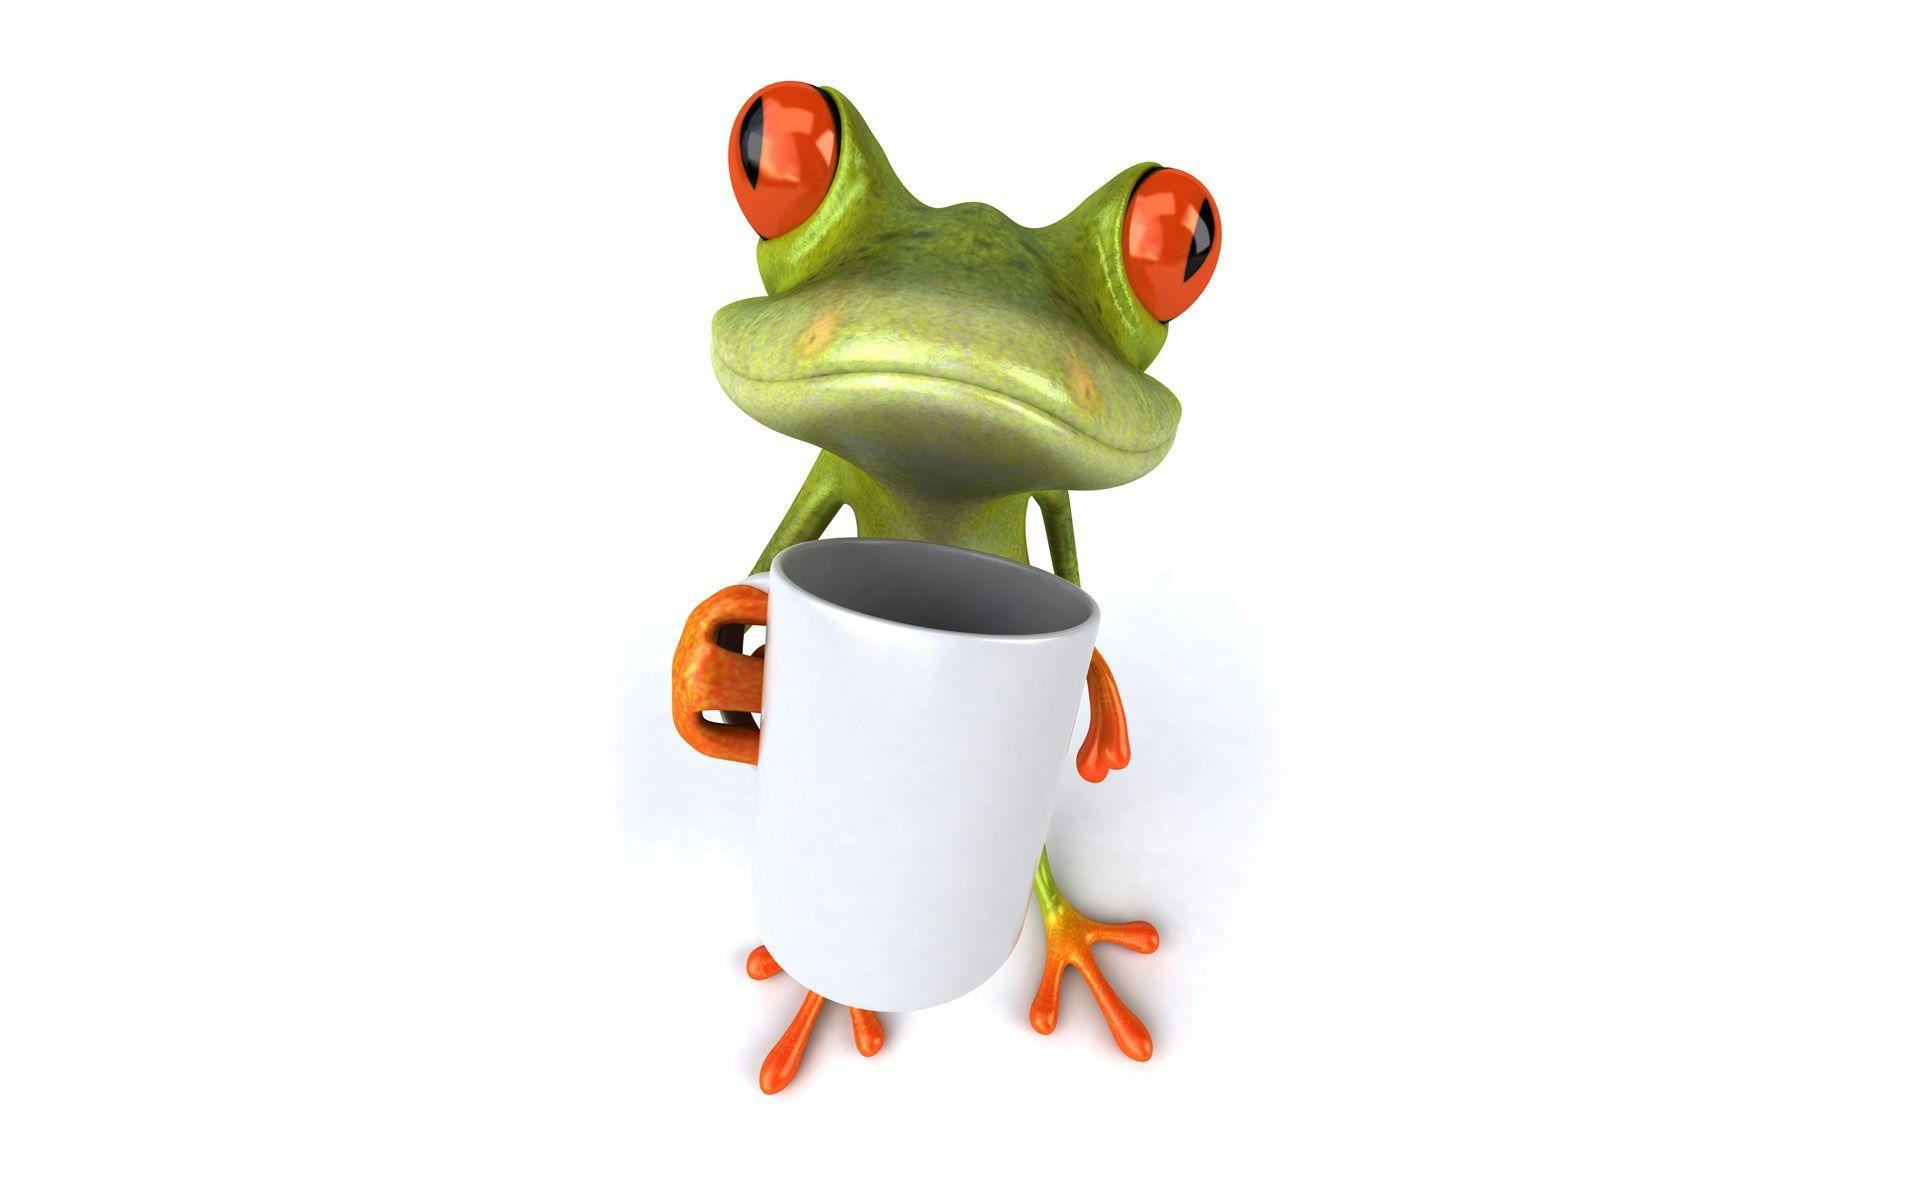 Funny Frog Wallpapers - Wallpaper Cave